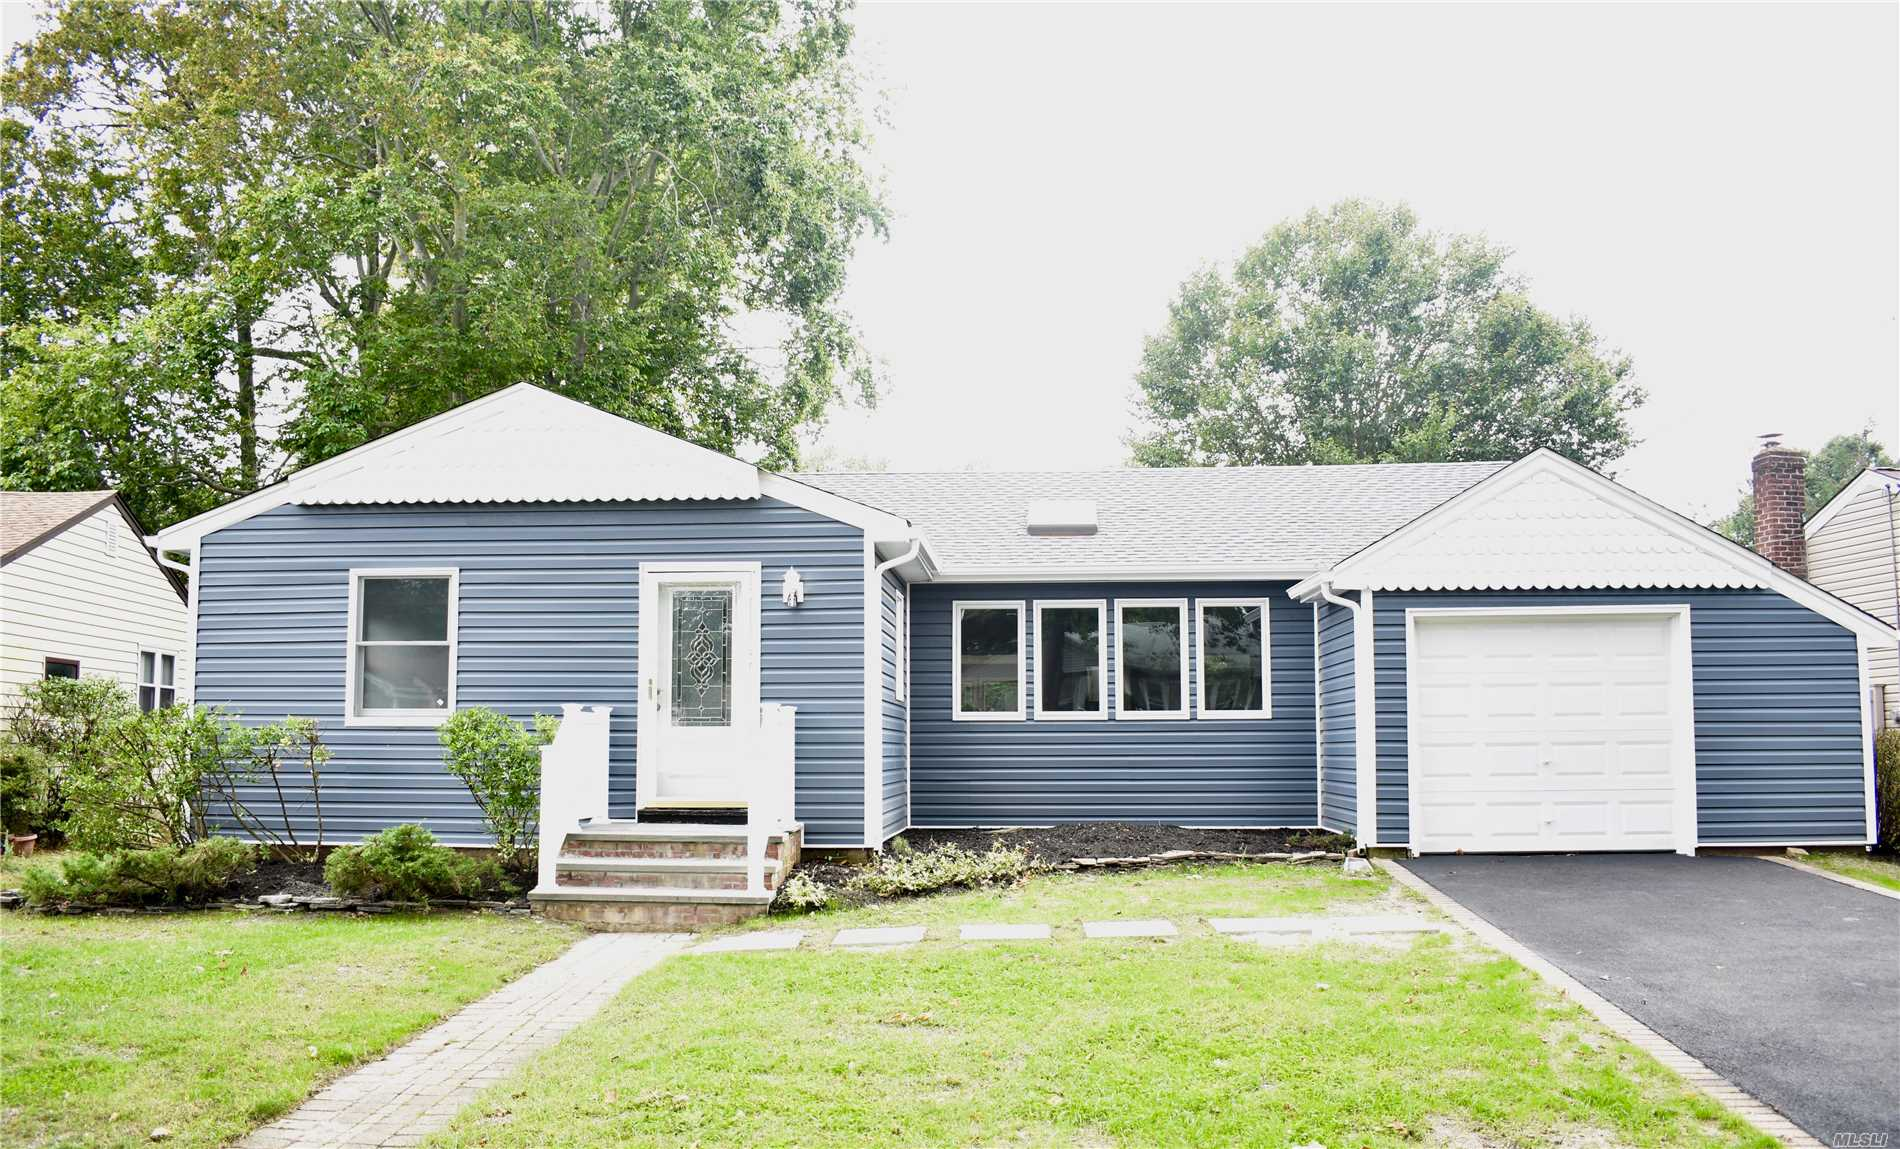 Newly Renovated Home Features New Kitchen With Brand New Ss Appliances. Oak Floors, New Baths , New Siding And Much More. Beautiful Entrance Leading Into An Open Living Area With Skylights. This Home Is Nestled In A Quiet Area.